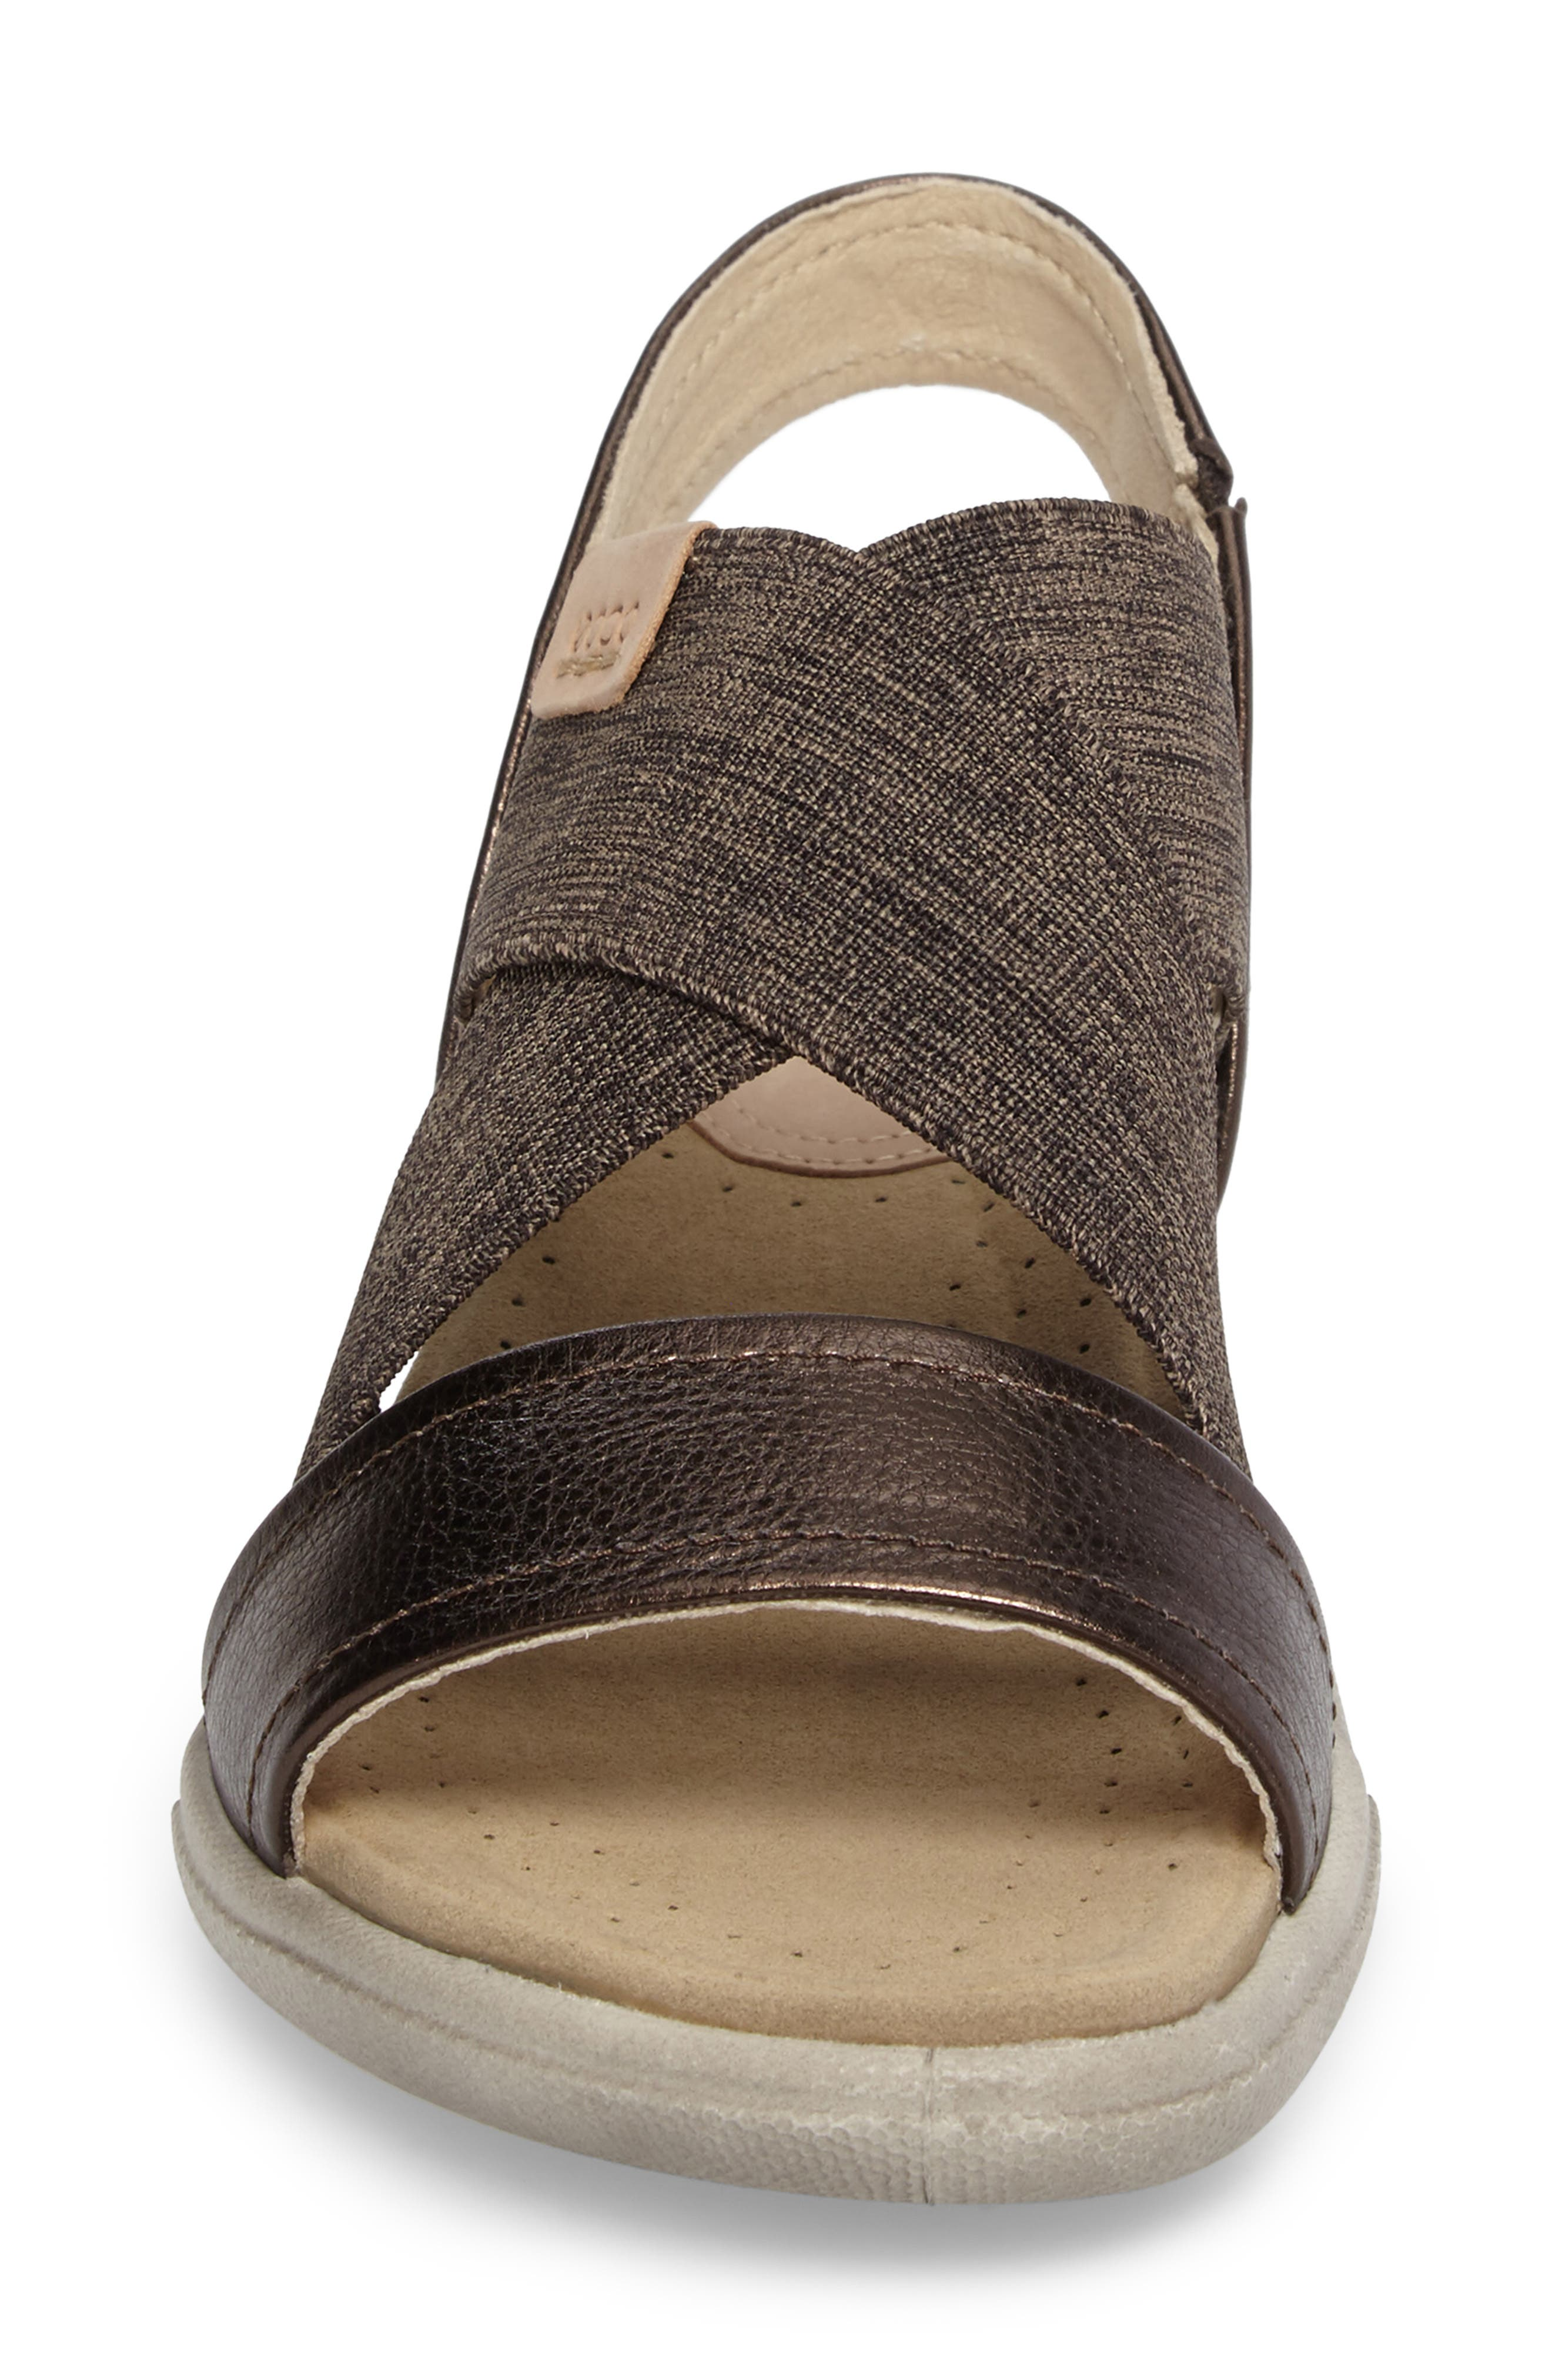 Damara Cross-Strap Sandal,                             Alternate thumbnail 27, color,